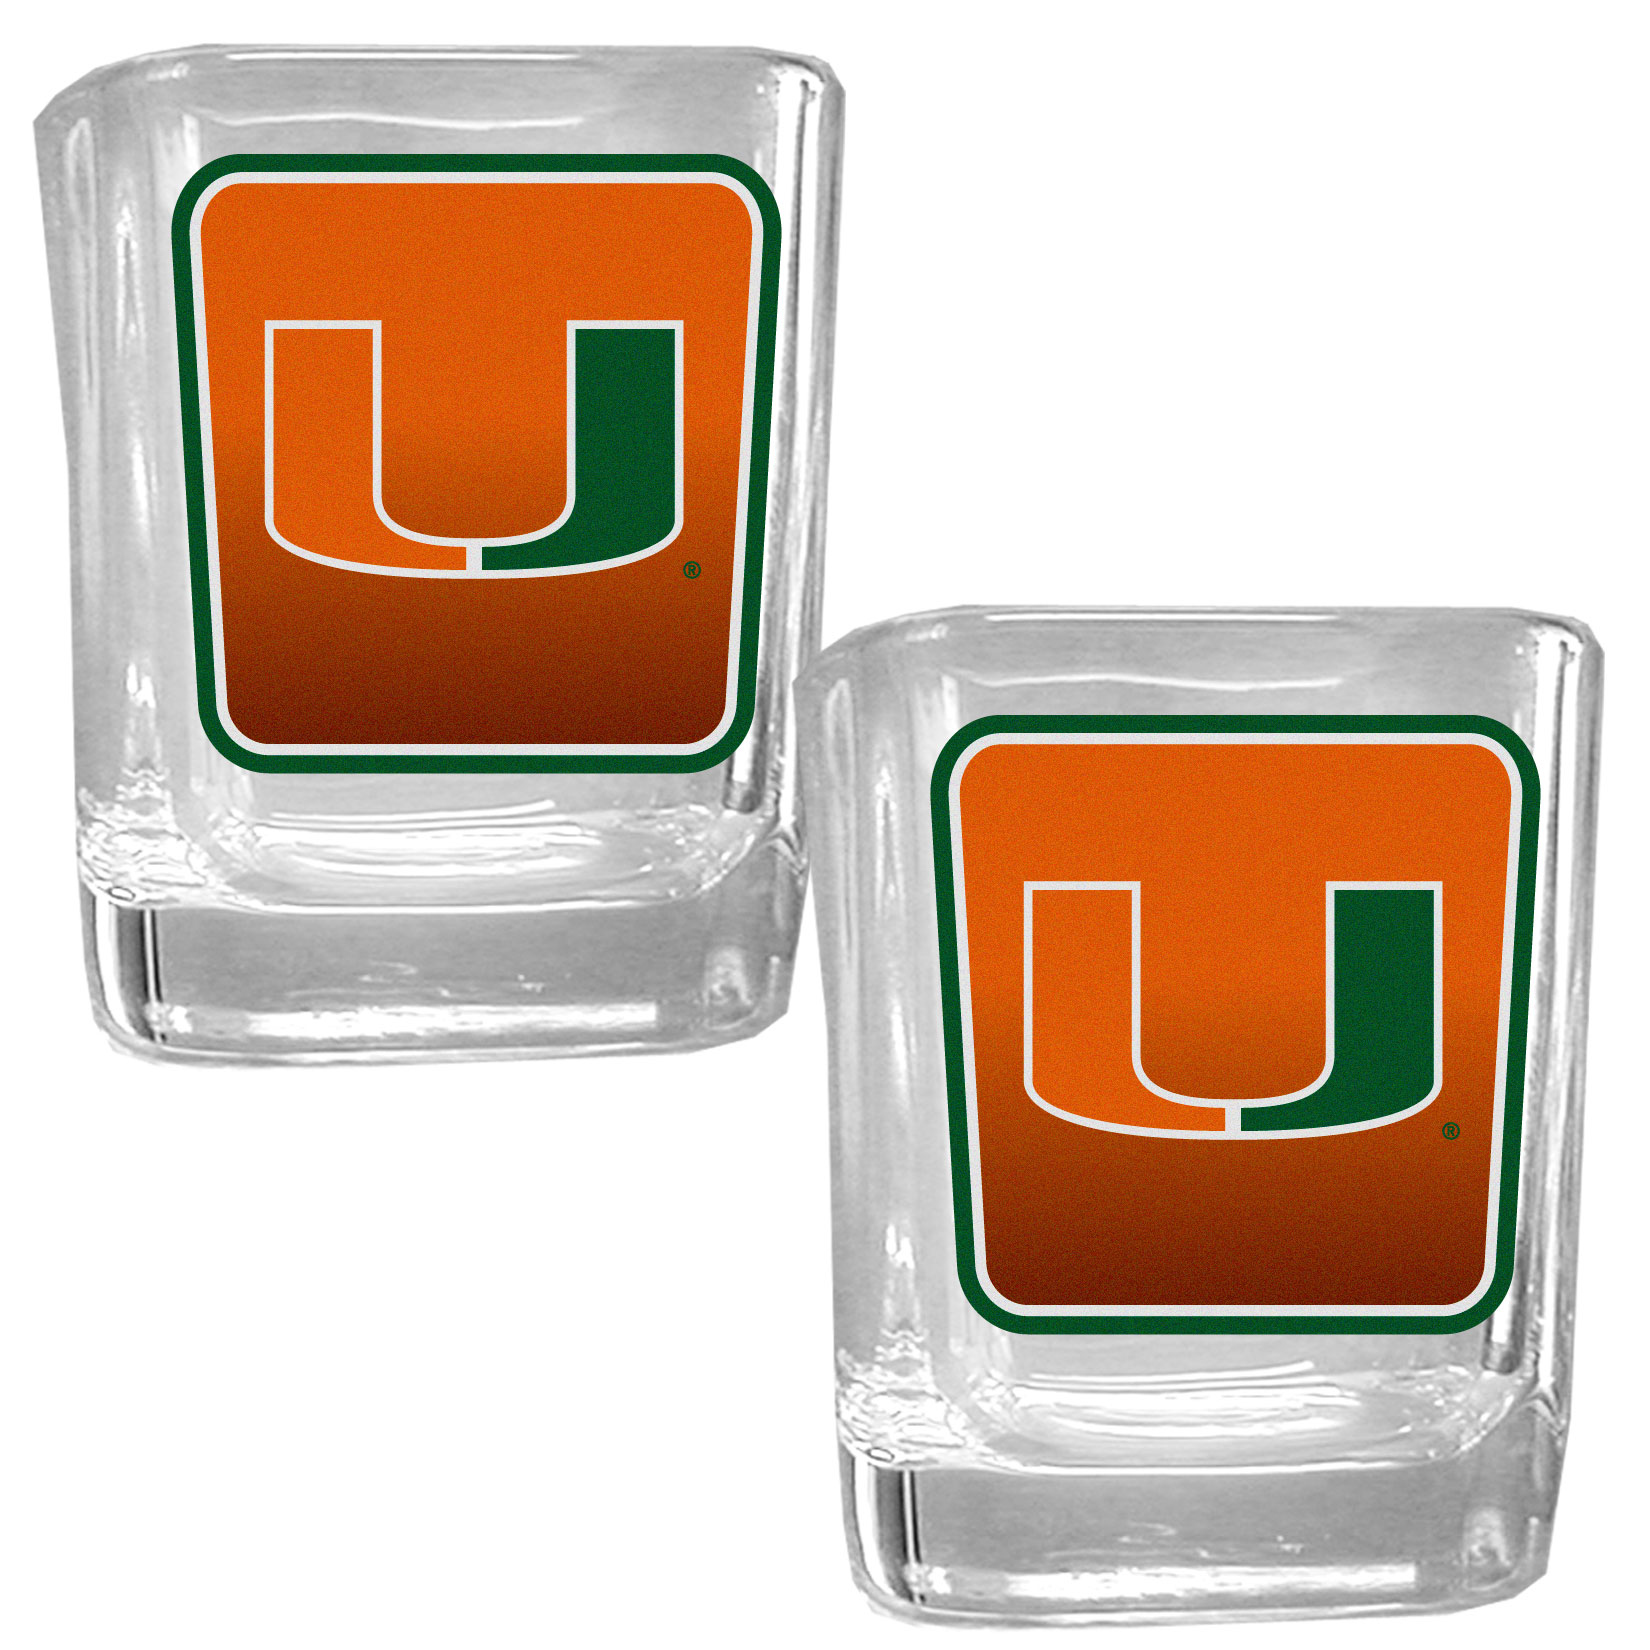 Miami Hurricanes Square Glass Shot Glass Set - Our glass shot glasses are perfect for collectors or any game day event. The 2 ounce glasses feature bright, vidid digital Miami Hurricanes graphics. Comes in a set of 2.